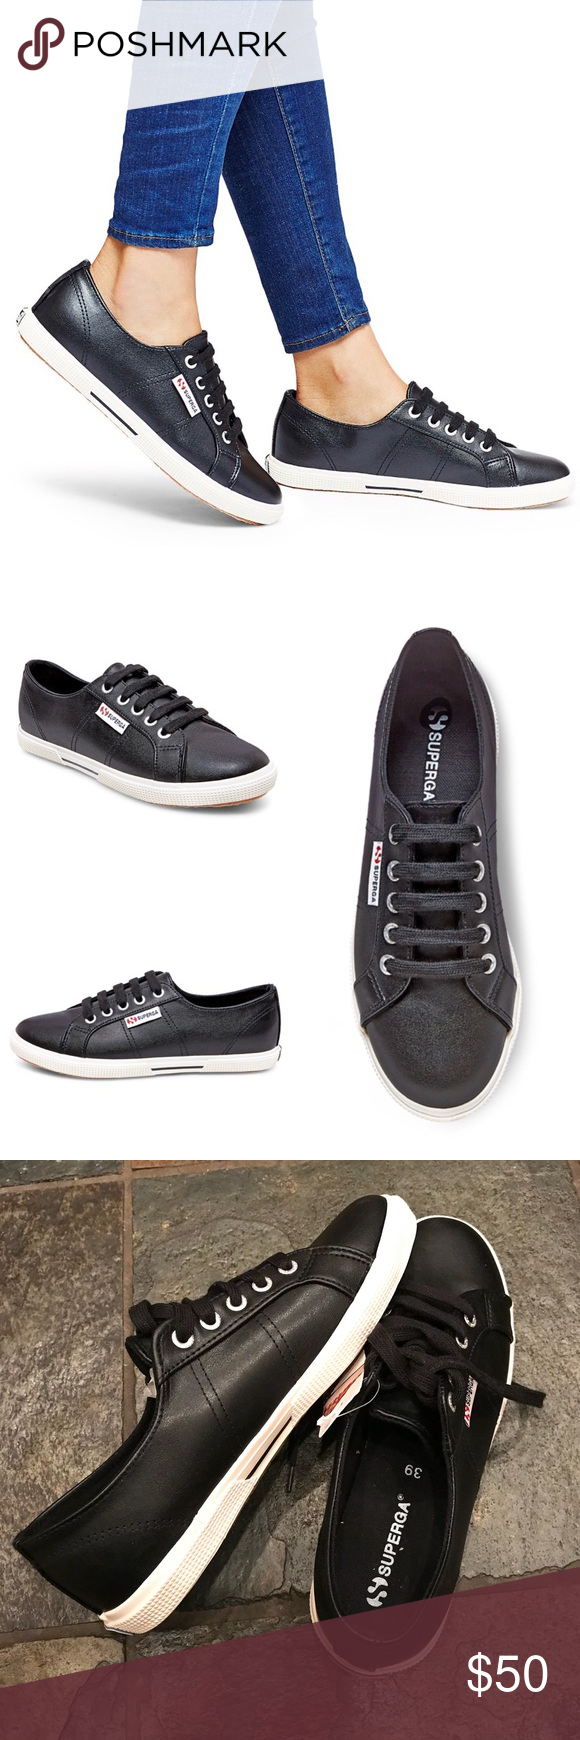 Sneakers, Superga shoes